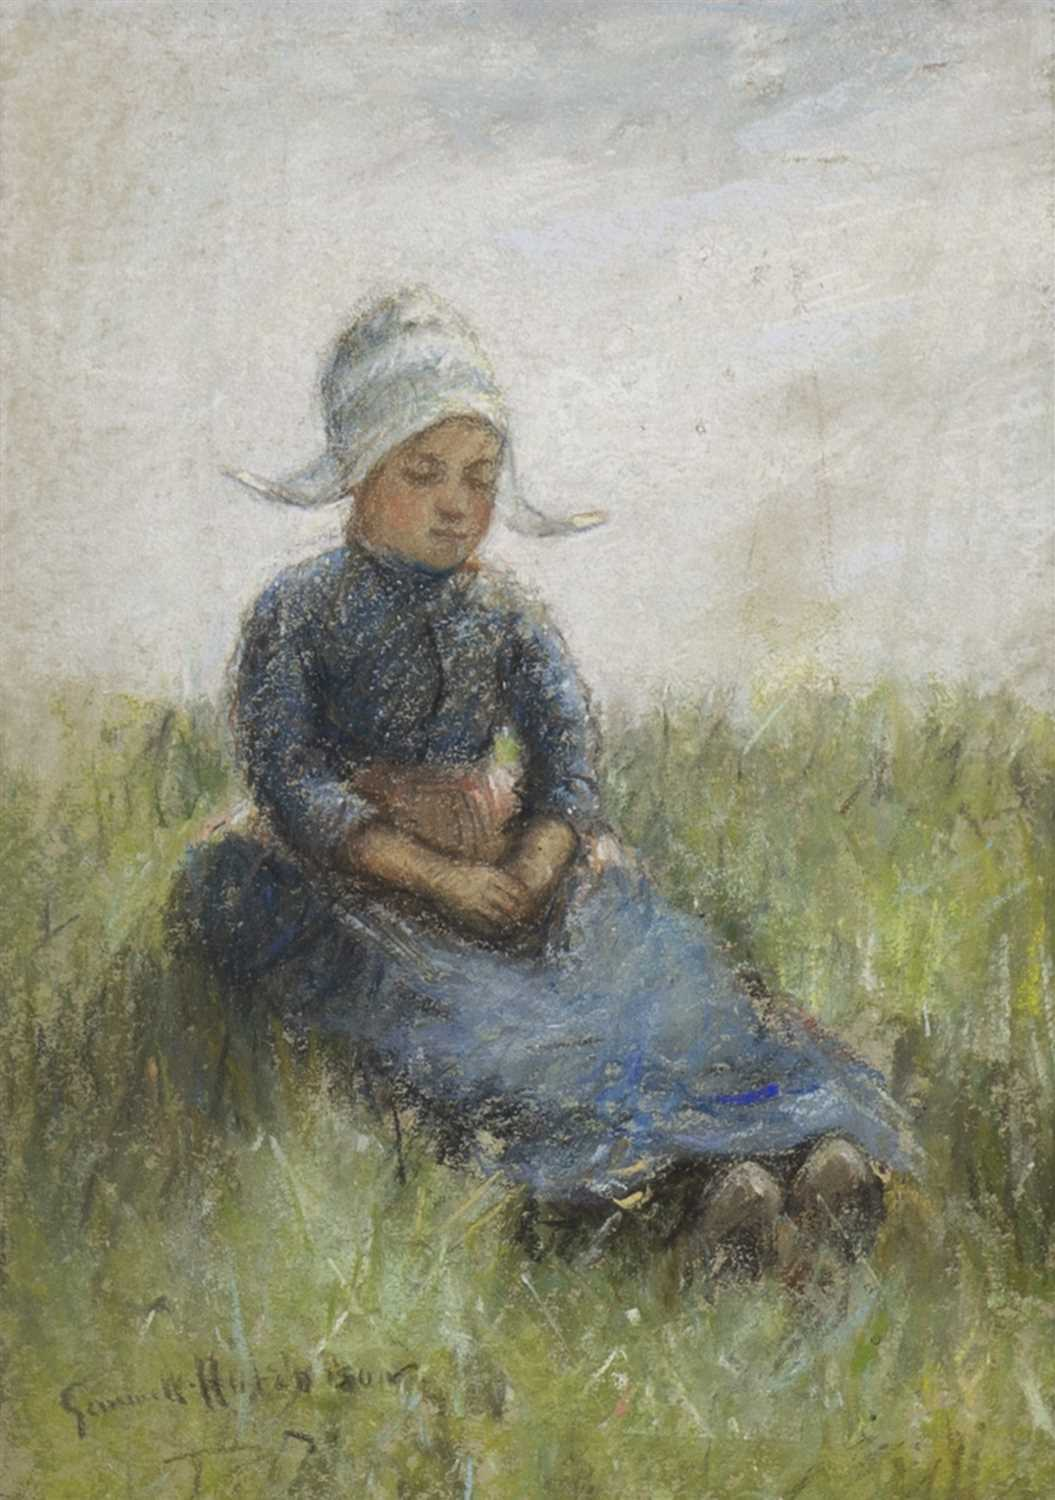 Lot 499-YOUNG GIRL IN THE GRASS, A PASTEL BY ROBERT GEMMELL HUTCHISON